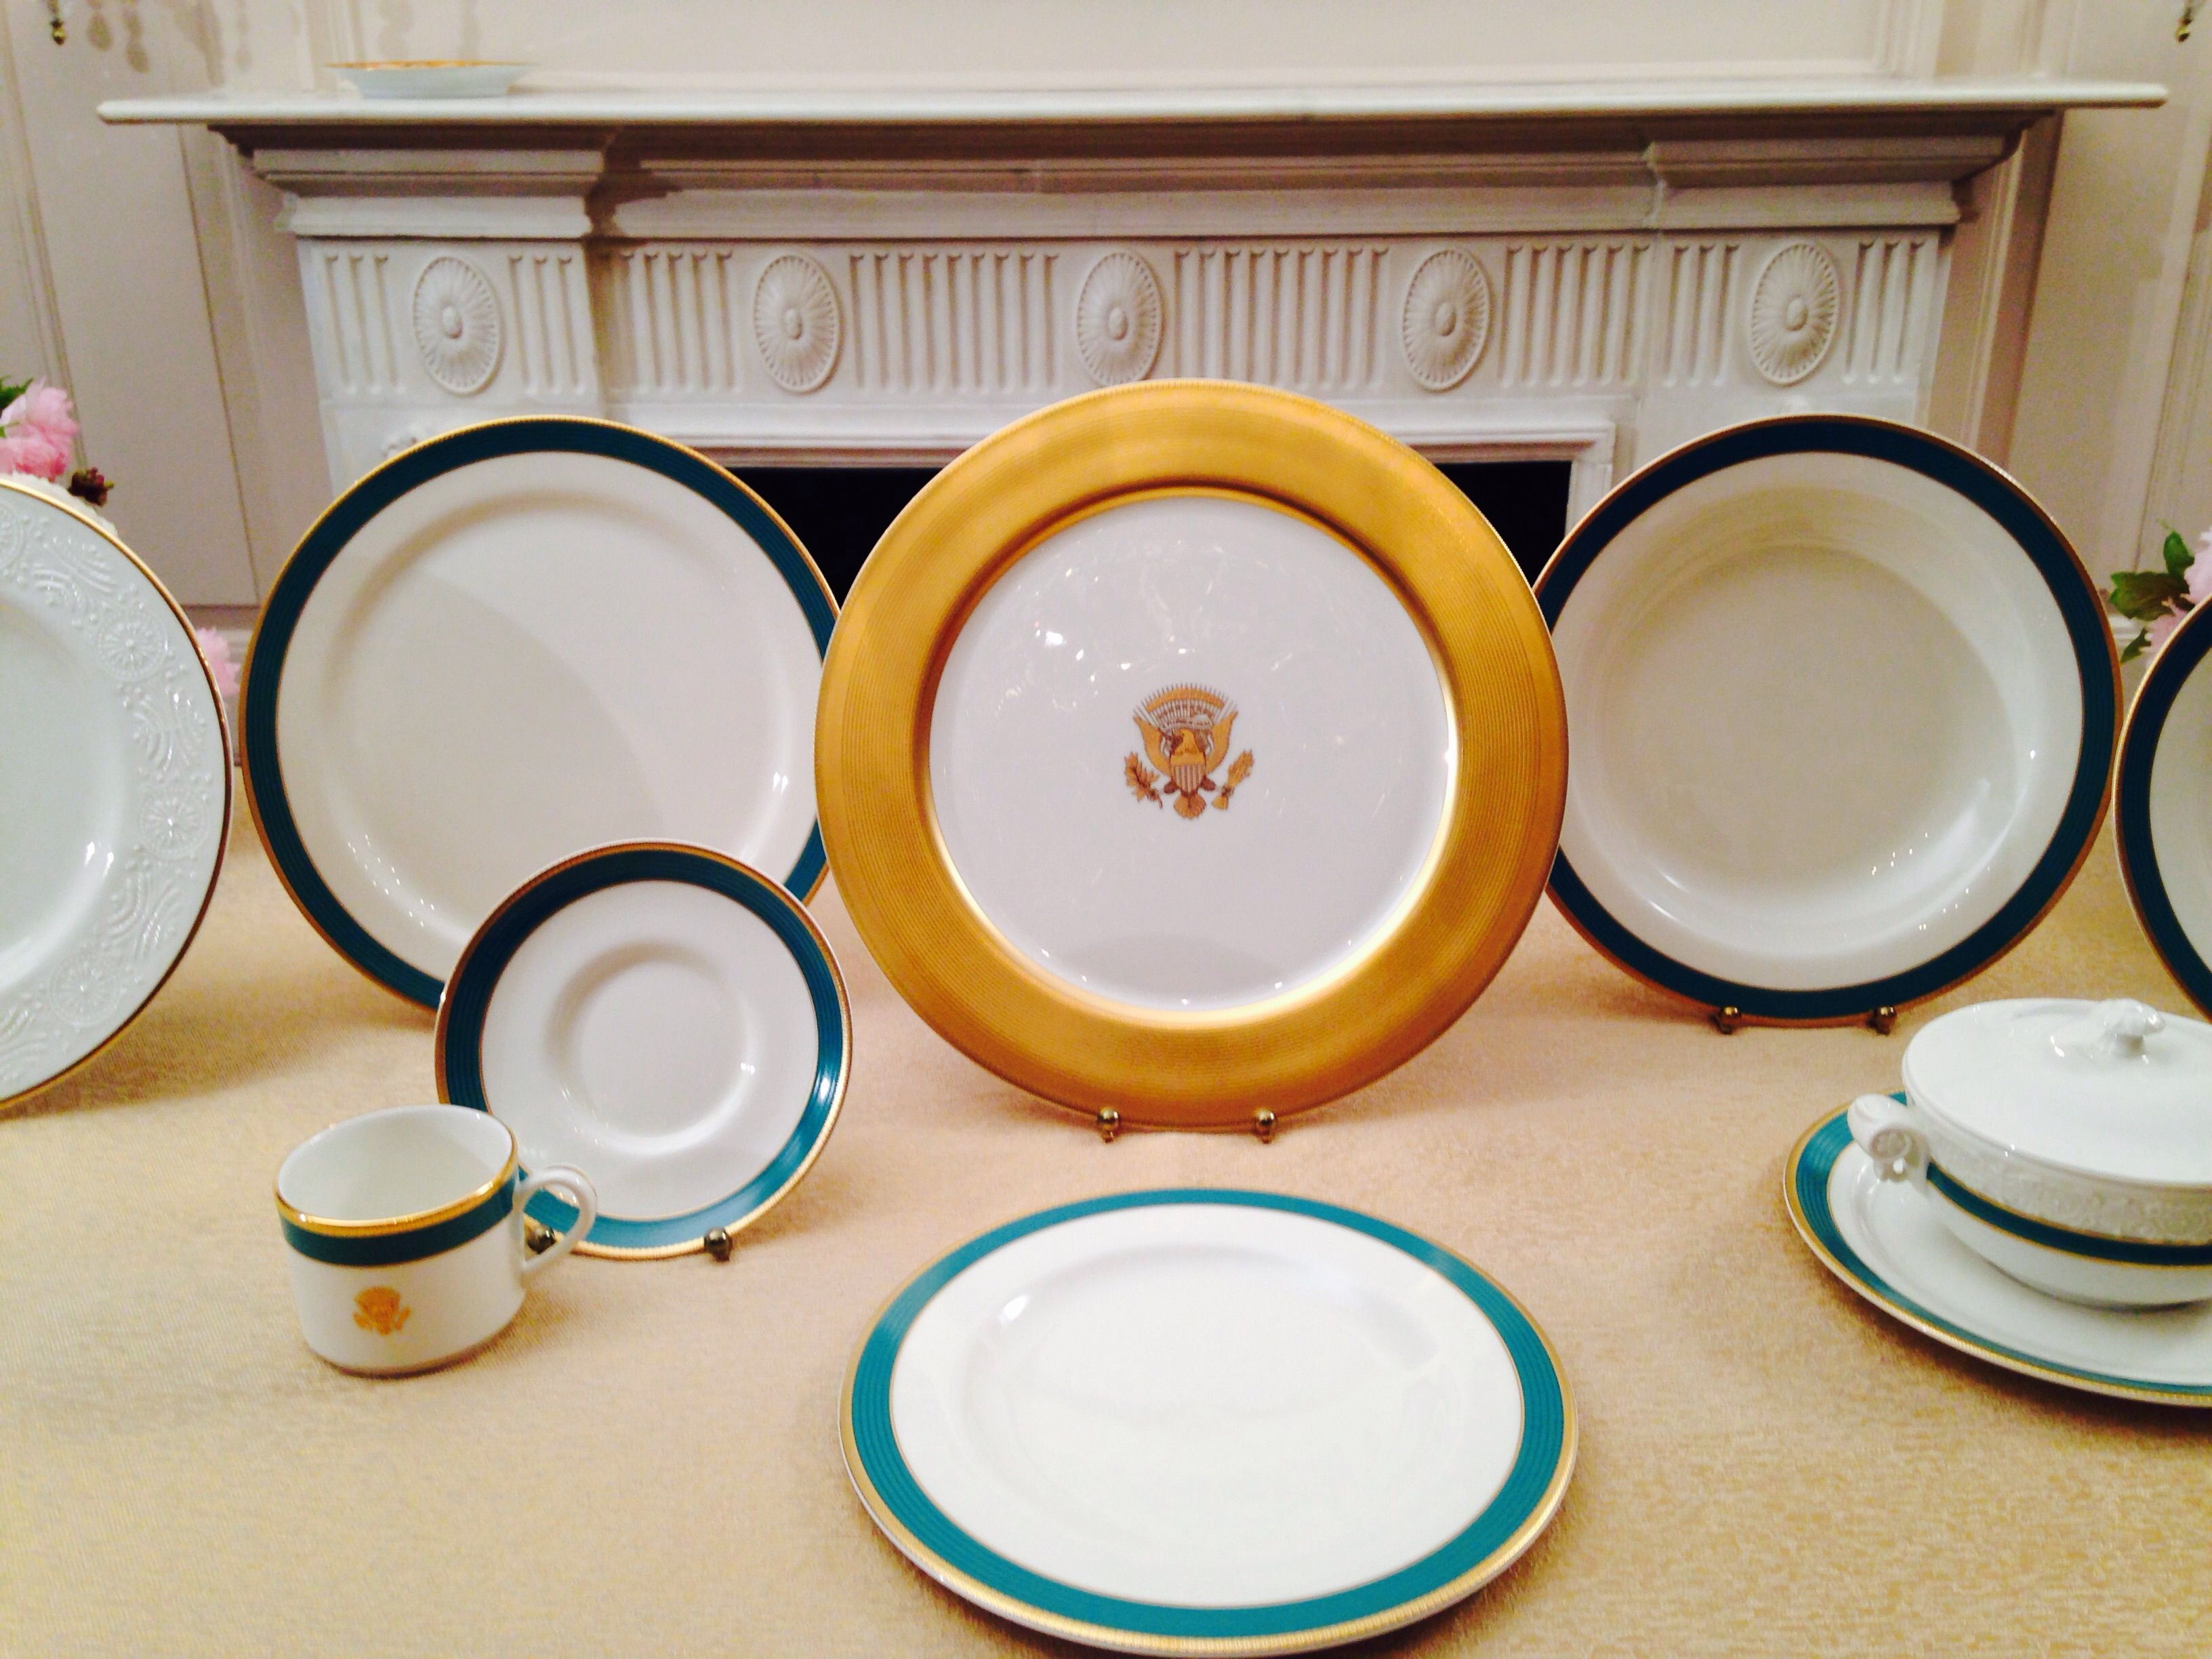 An Exclusive First Look at the Obama State China